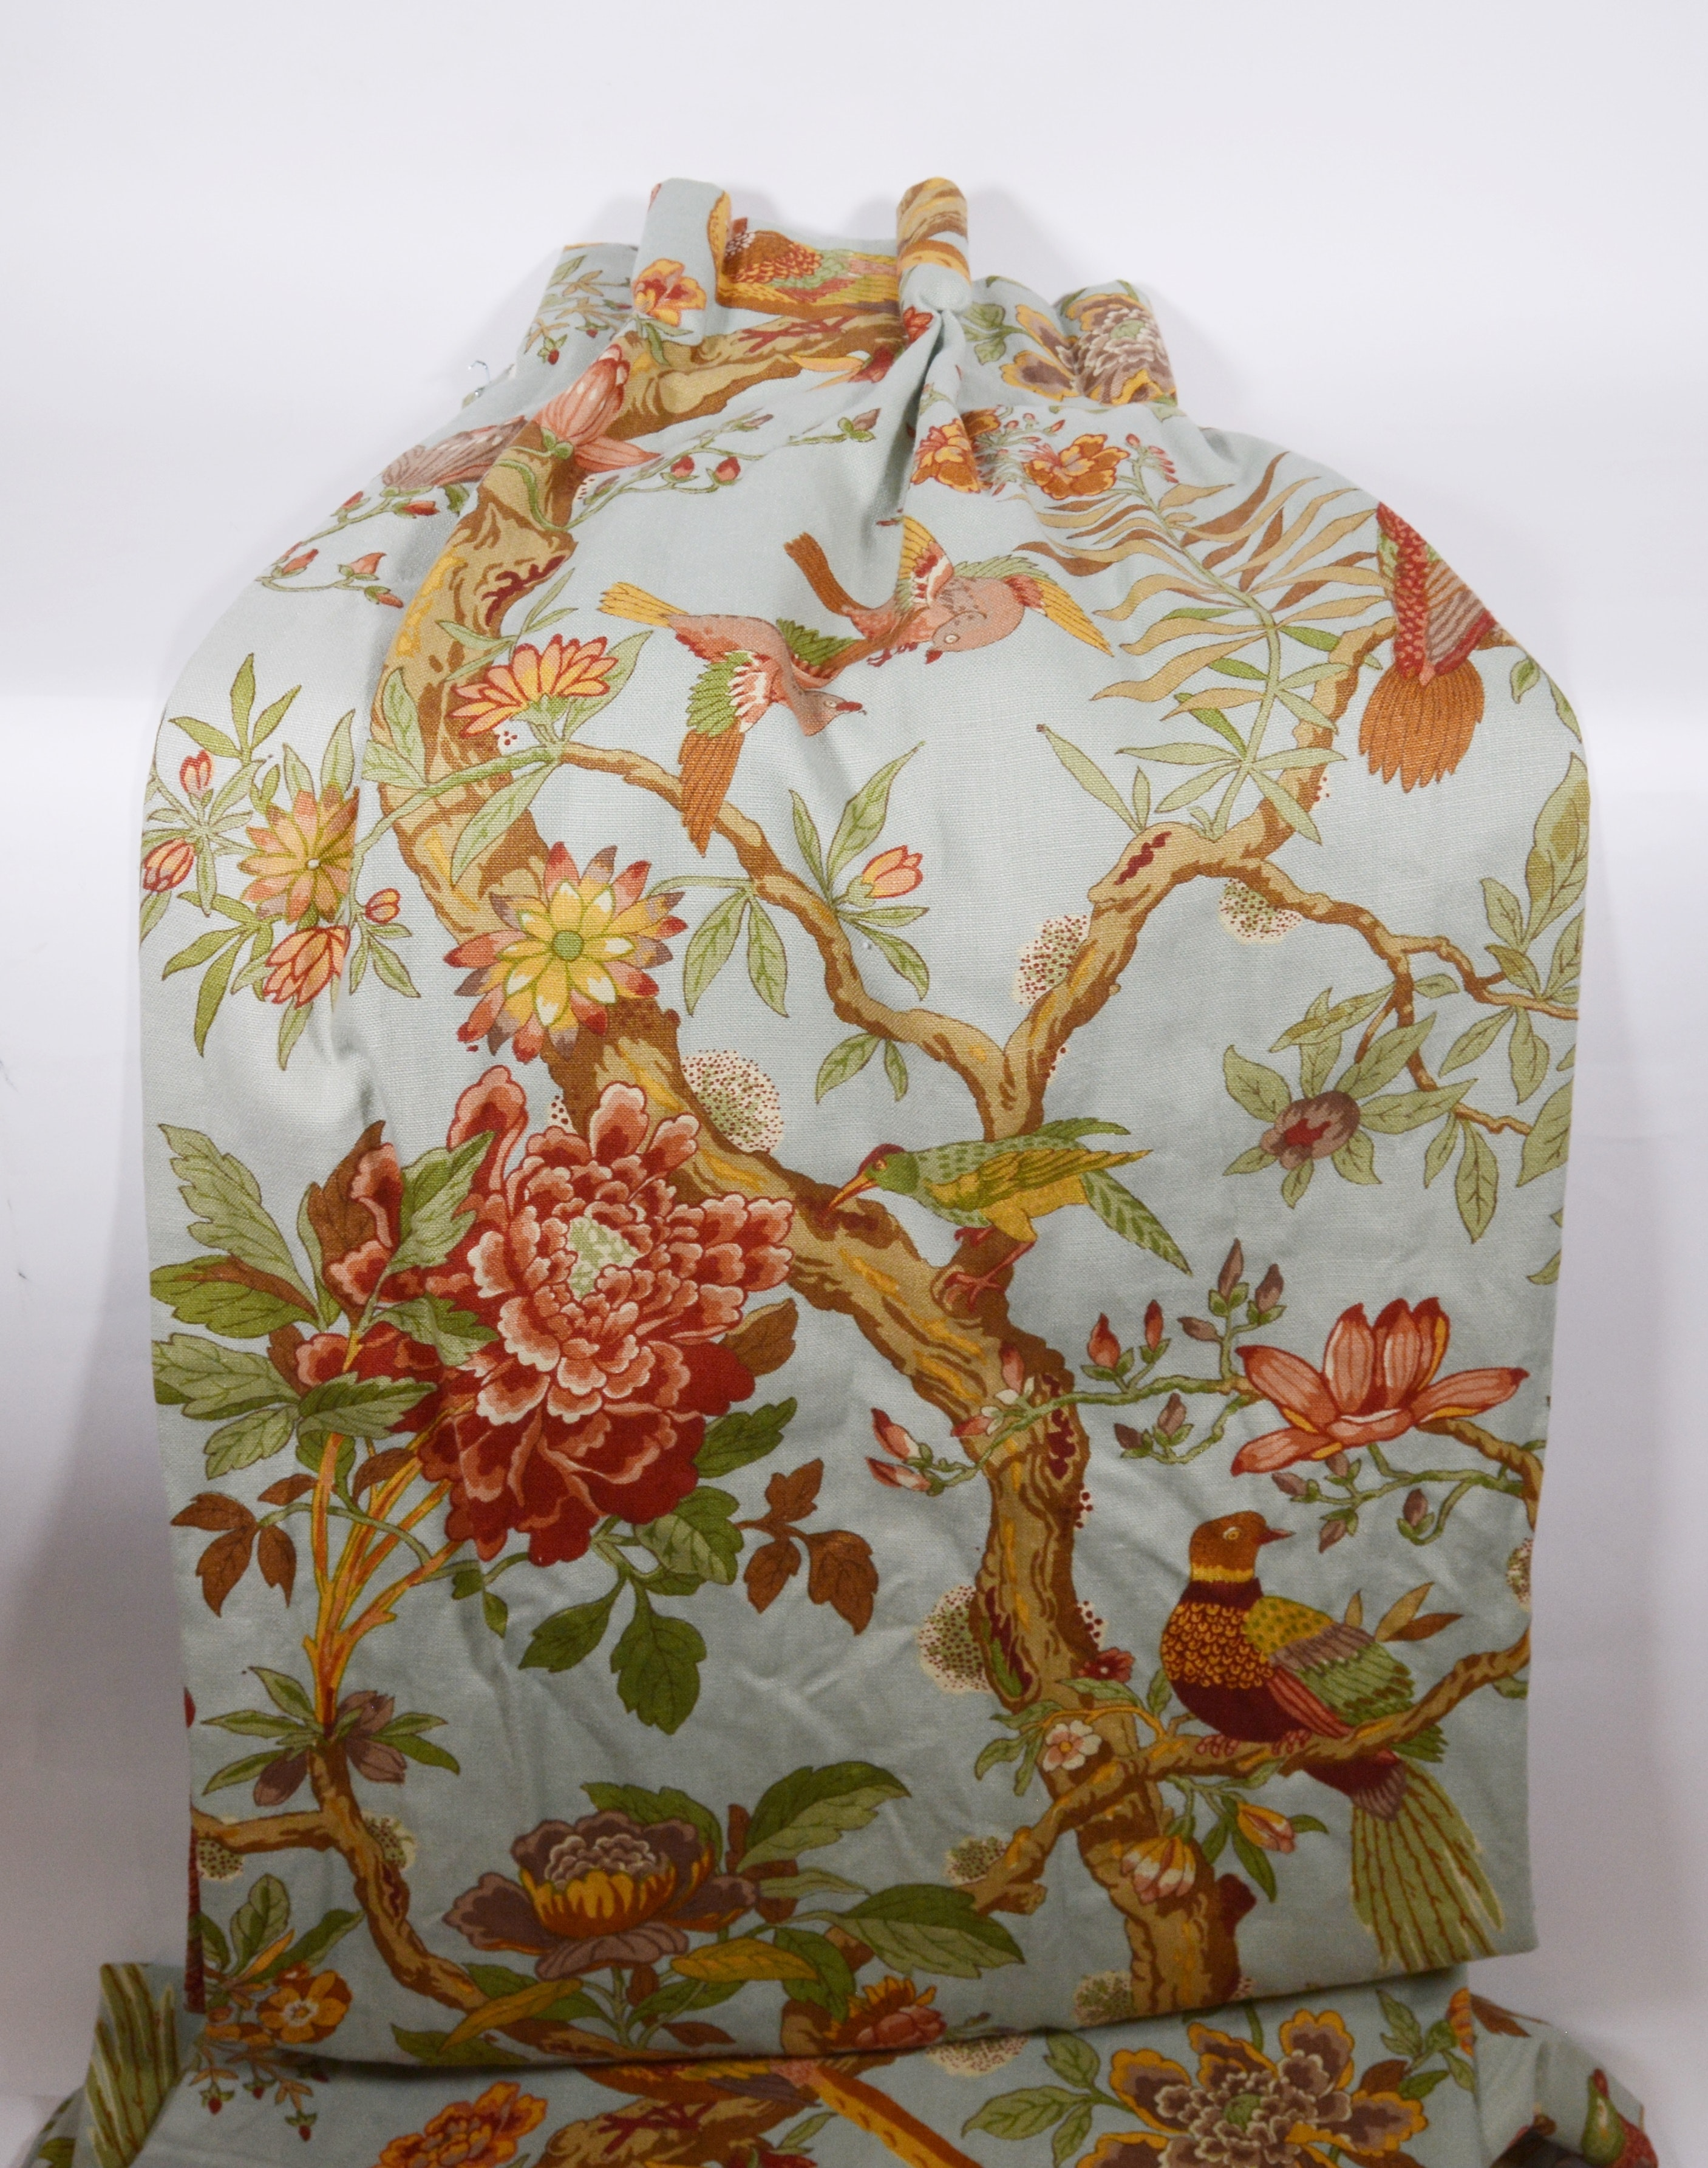 Floral and Bird Patterned Lined Drapery Panels